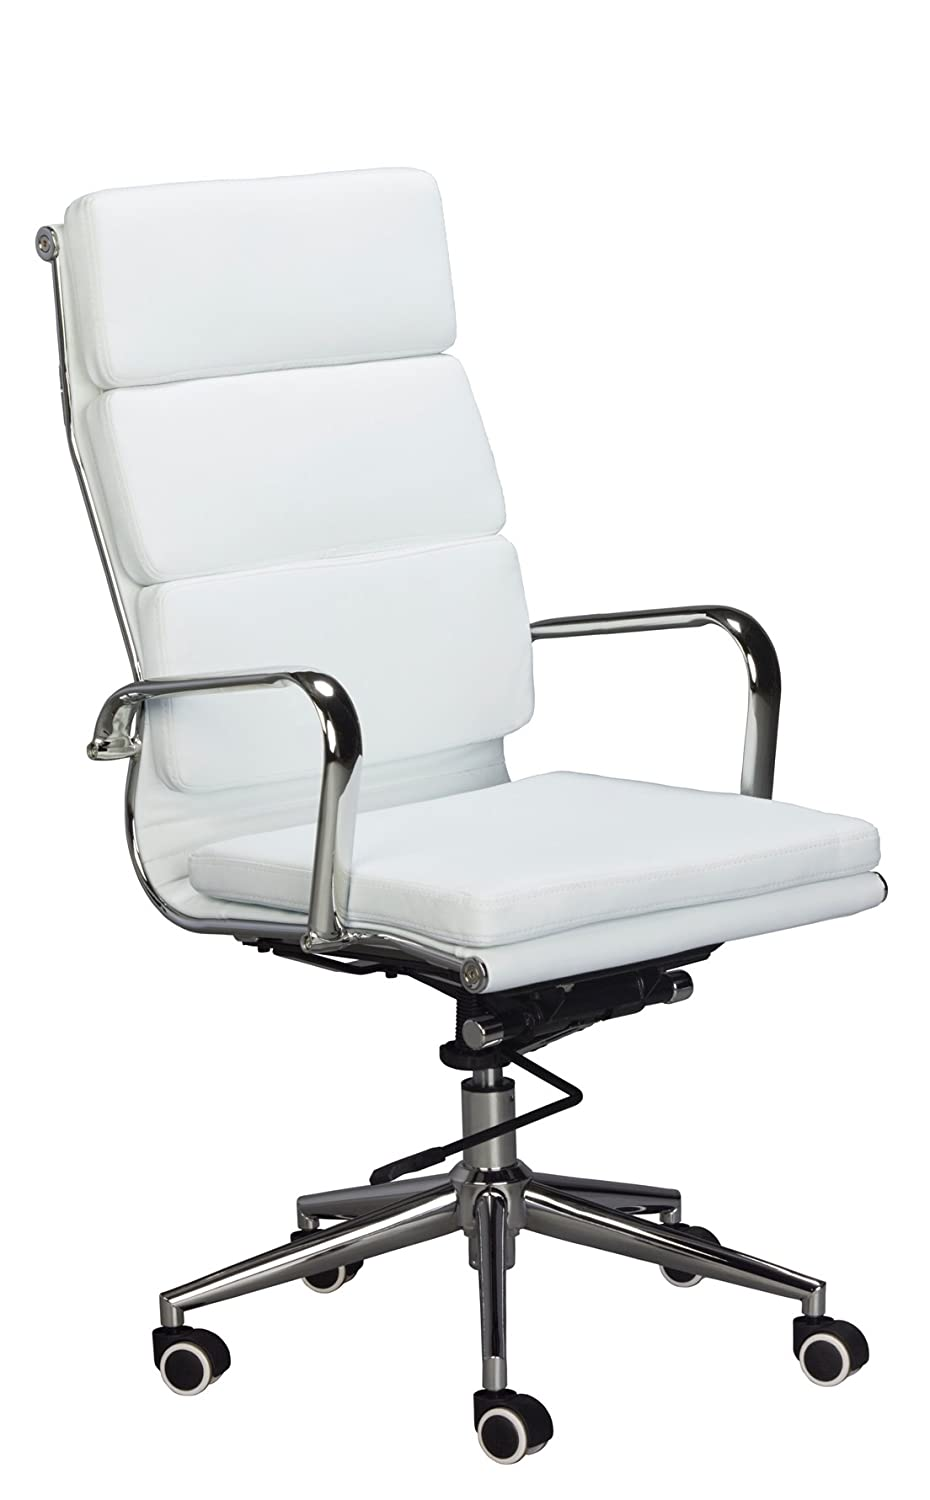 white unique office chairs. Amazon.com: Classic Replica High Back Office Chair - WHITE Vegan Leather, Thick Density Foam, Stabilizing Bar Swivel \u0026 Deluxe Tilting Mechanism: White Unique Chairs